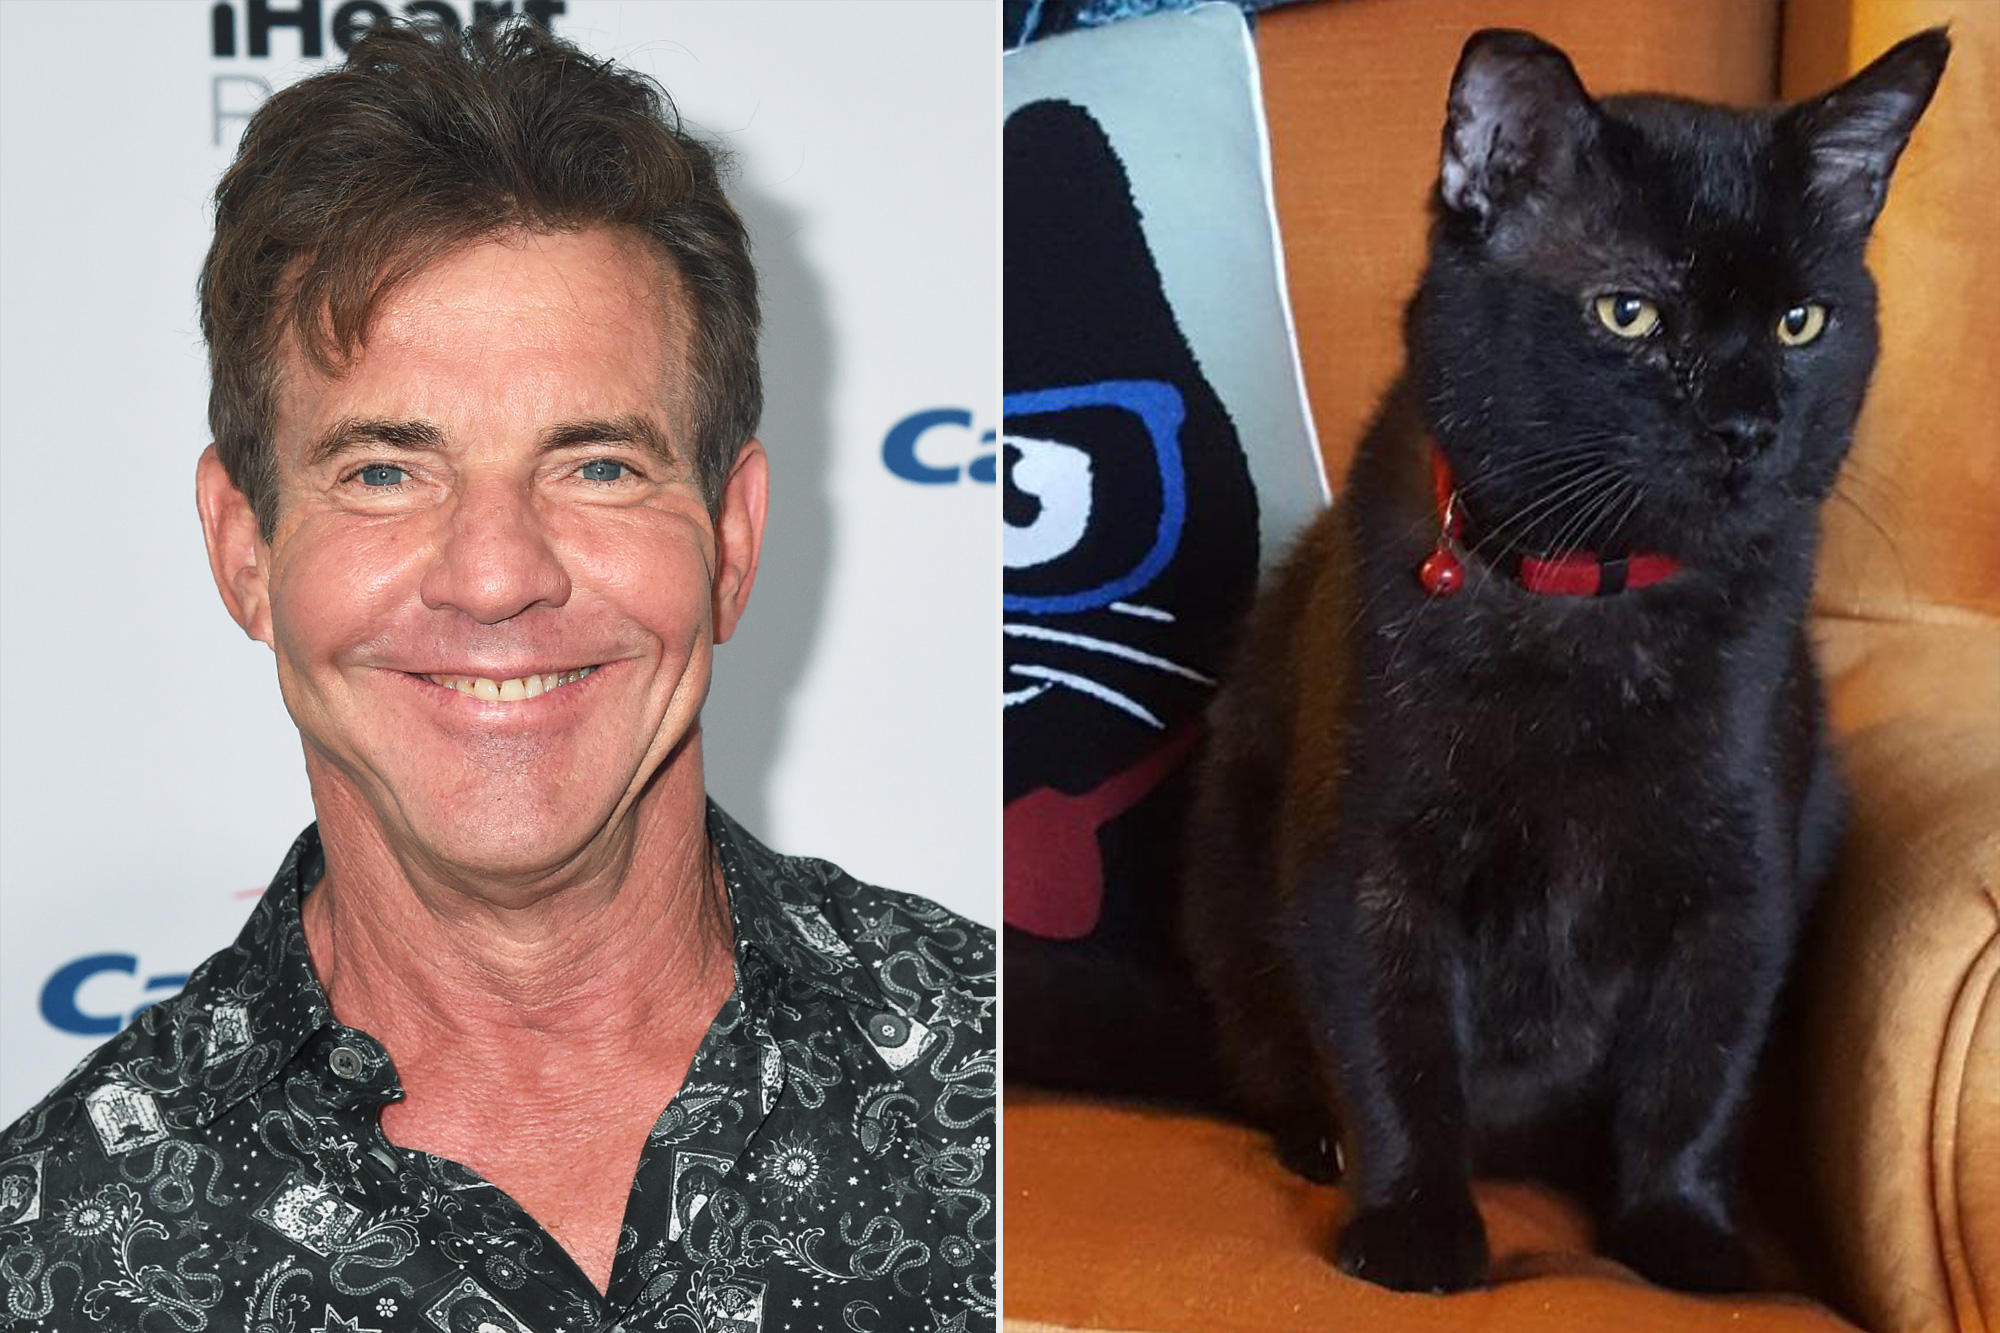 Dennis Quaid Adopts a Black Cat with the Same Name: 'I Just Couldn't Resist'